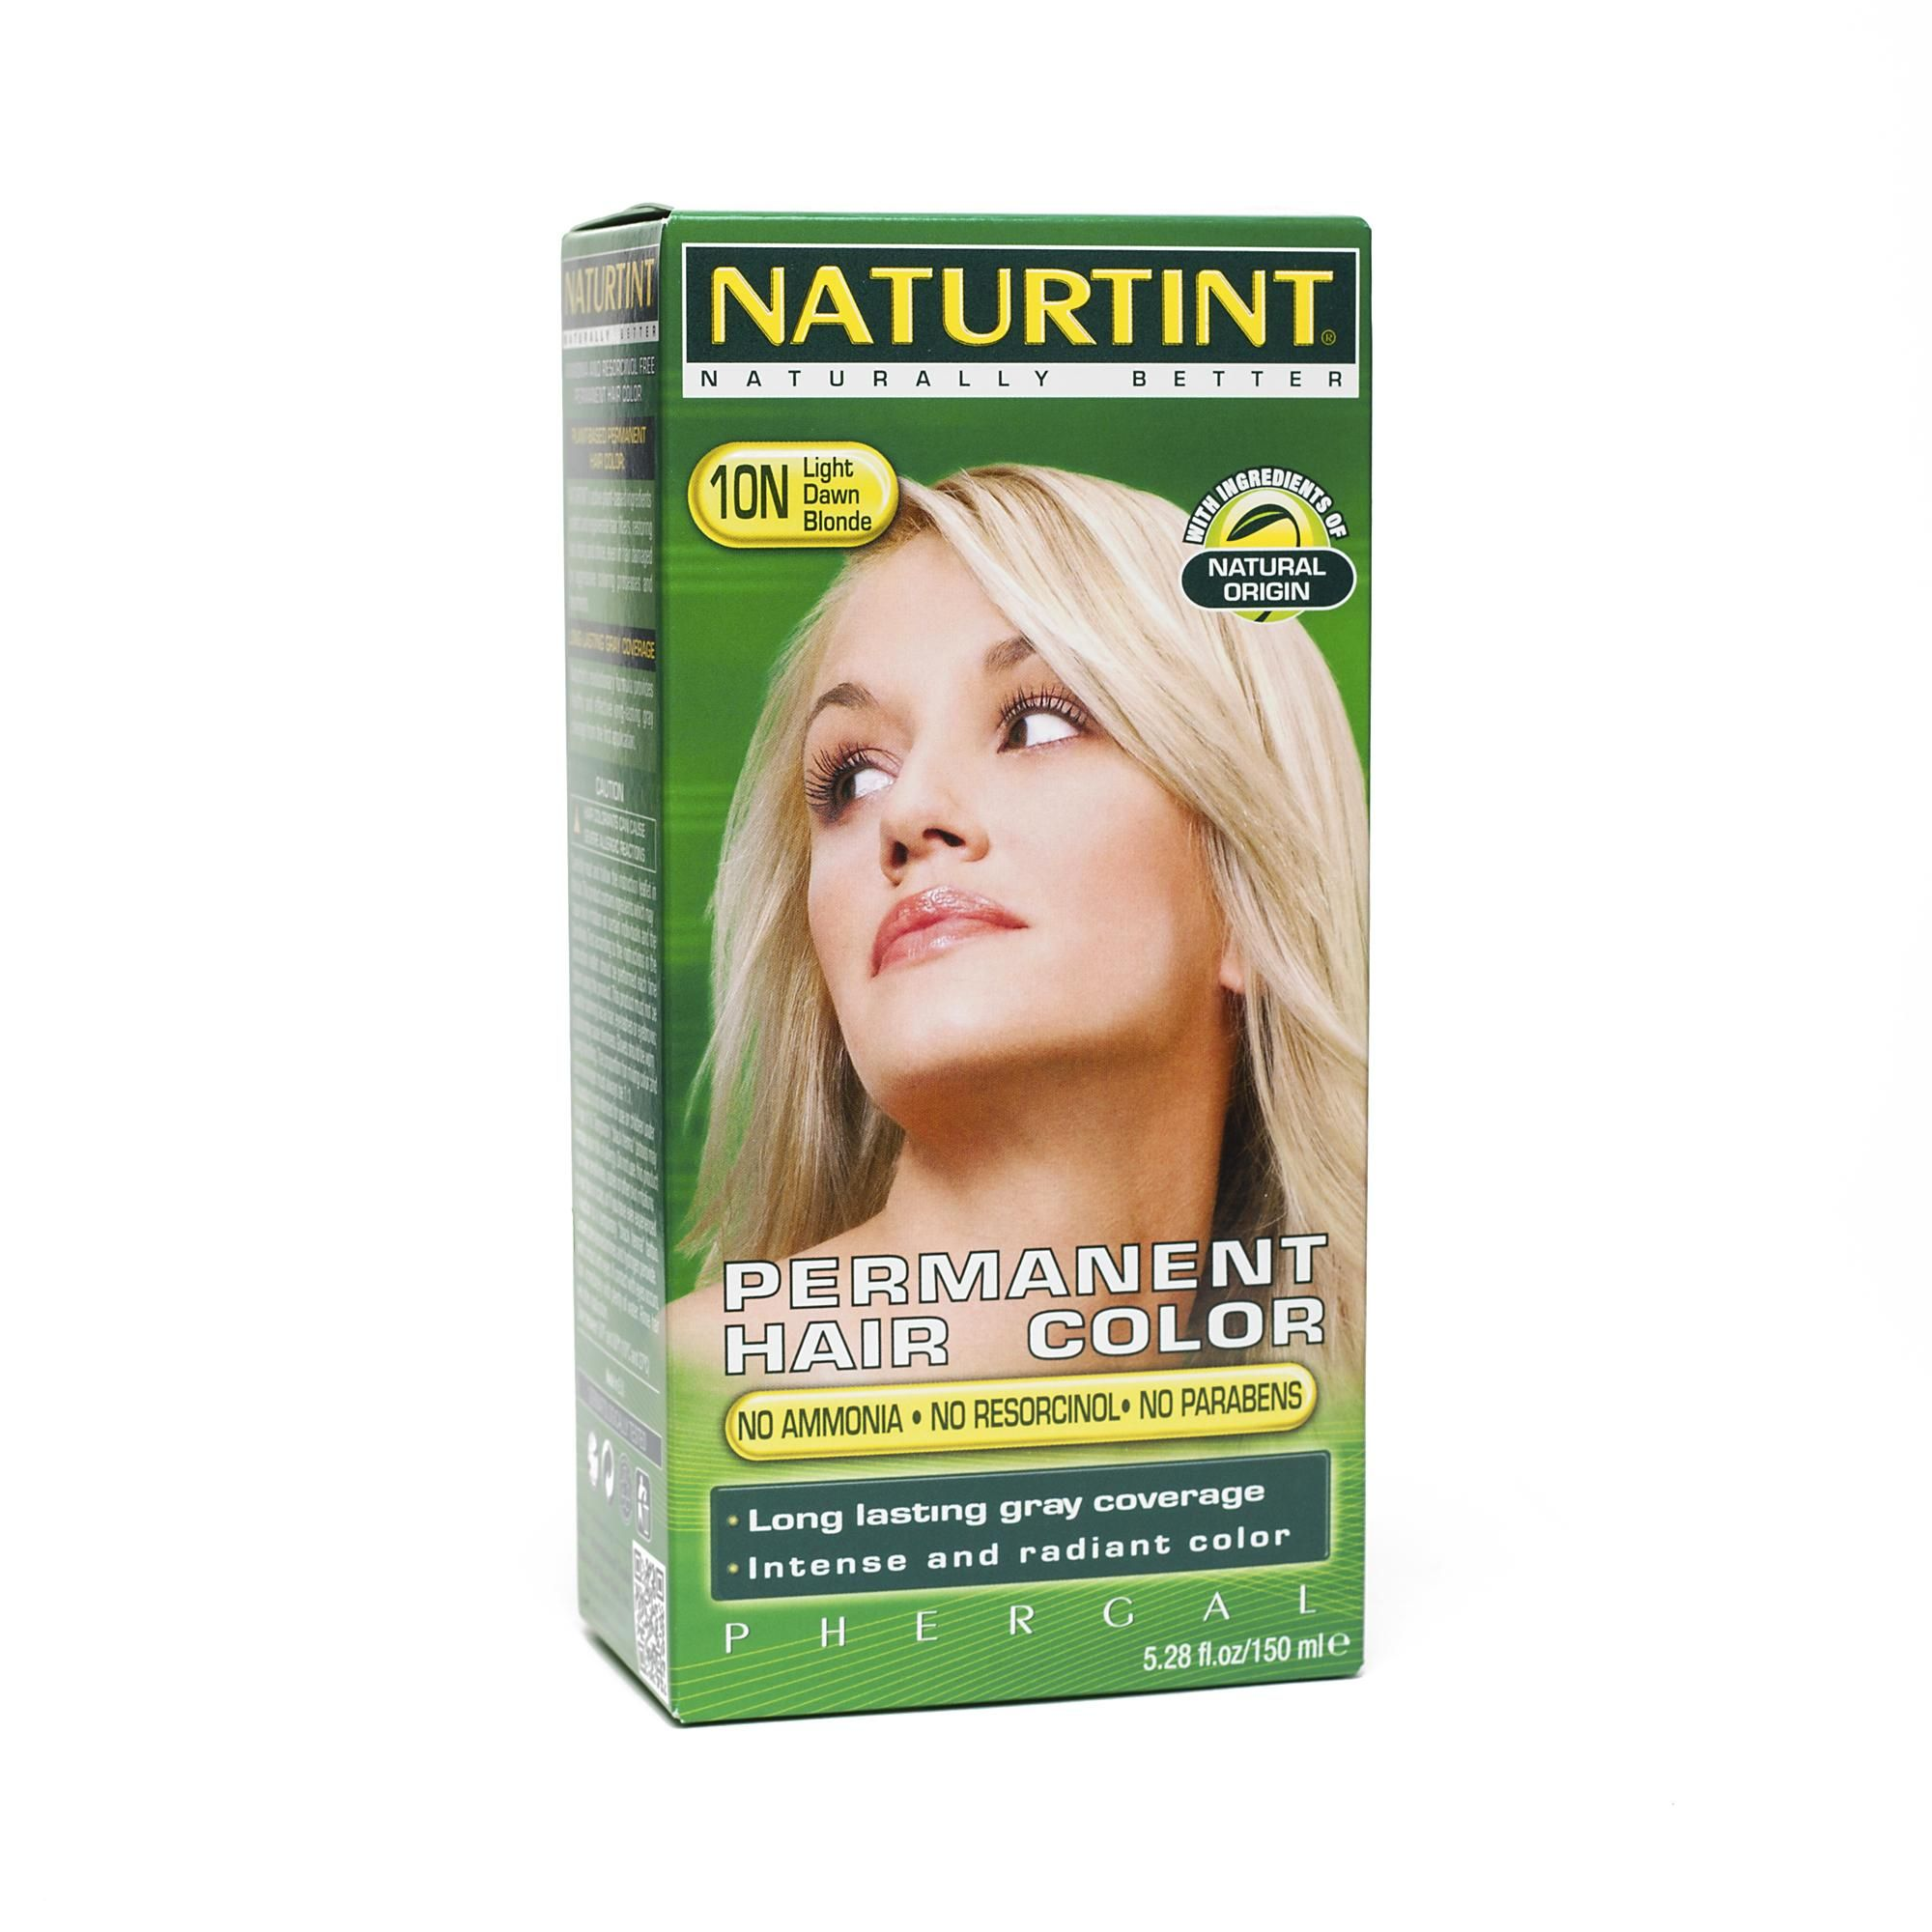 Naturtint Permanent Hair Color Light Dawn Blonde 10n Blonde Hair Color Light Hair Color Permanent Hair Color